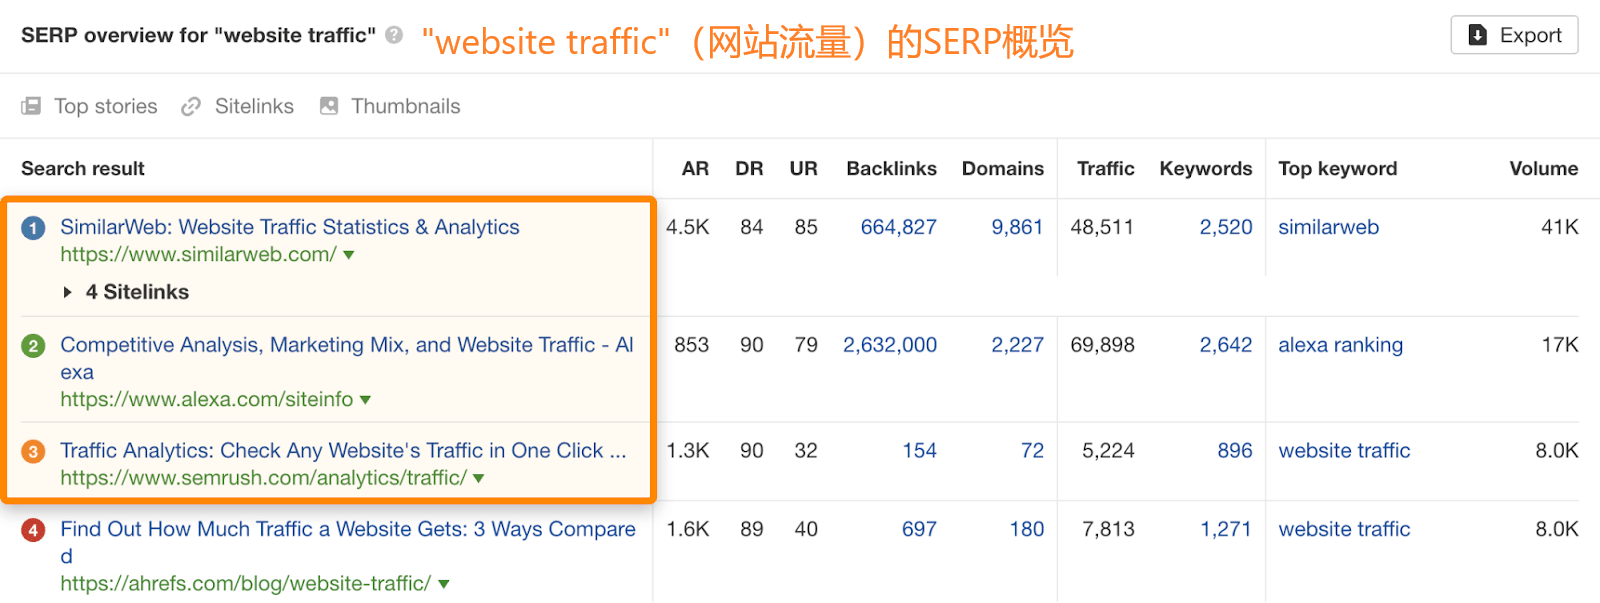 OK10 serp website traffic 1